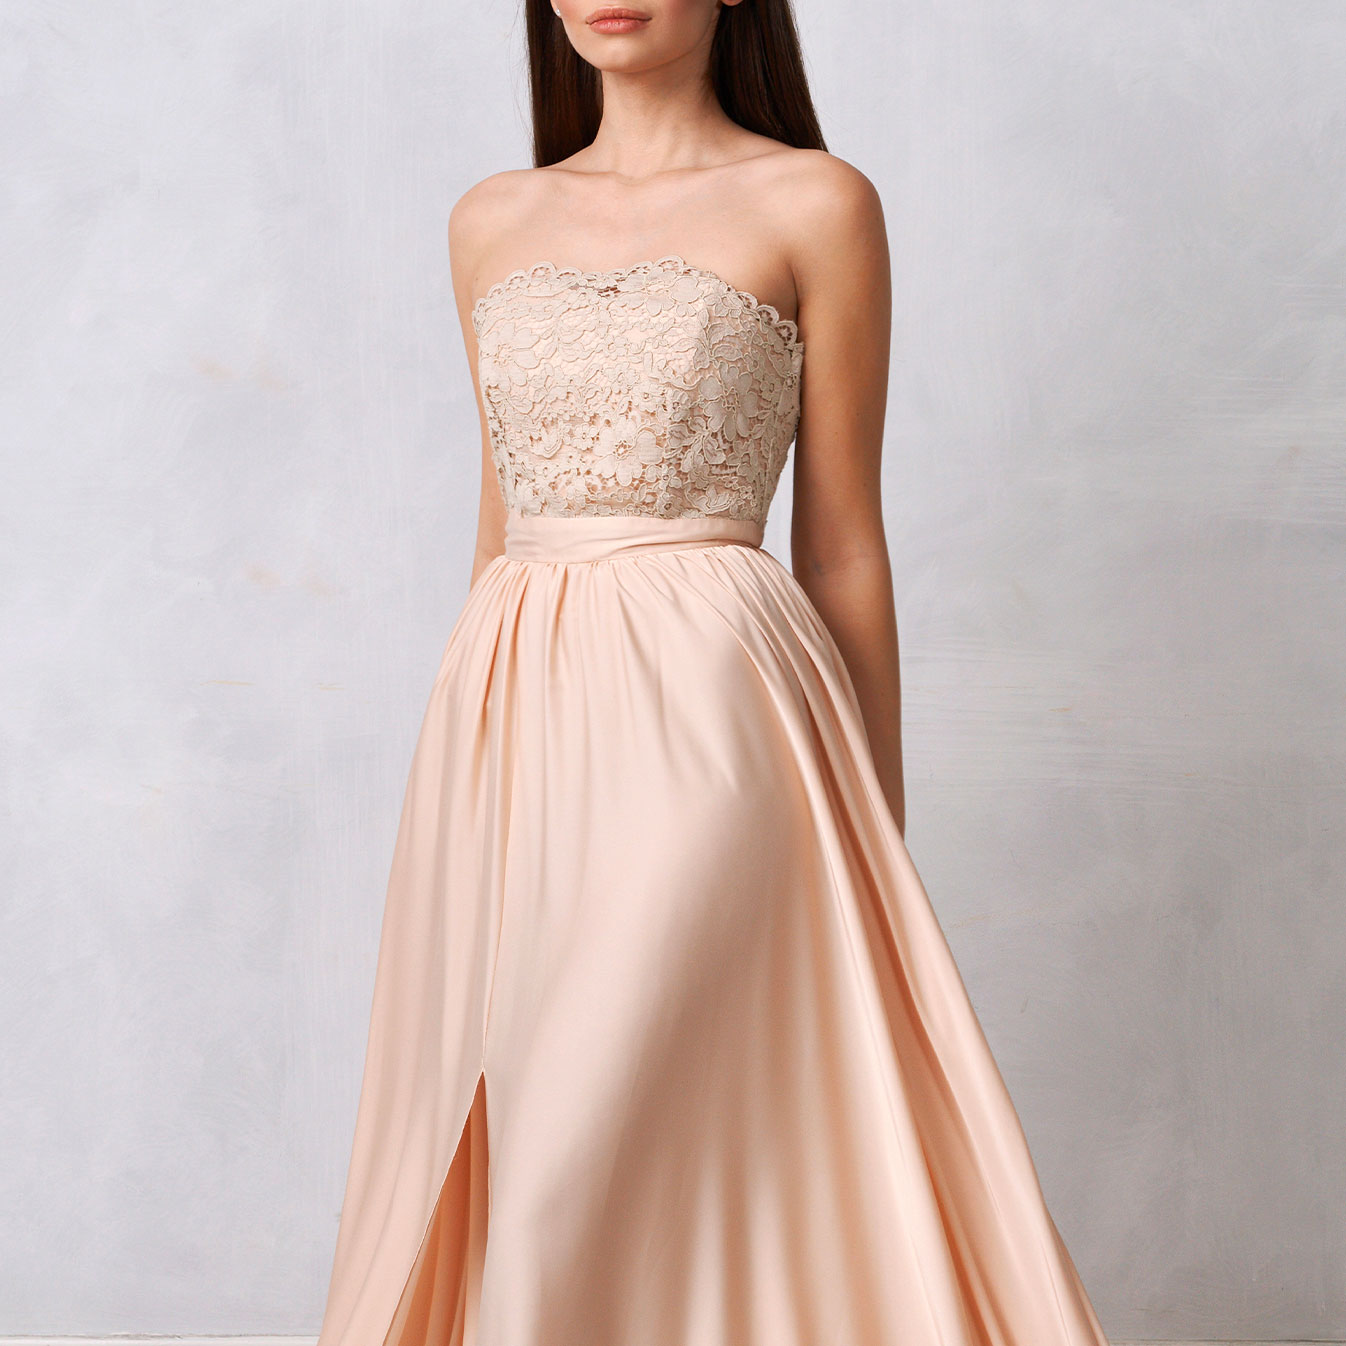 A beautiful dress that is altered to fit to perfection.